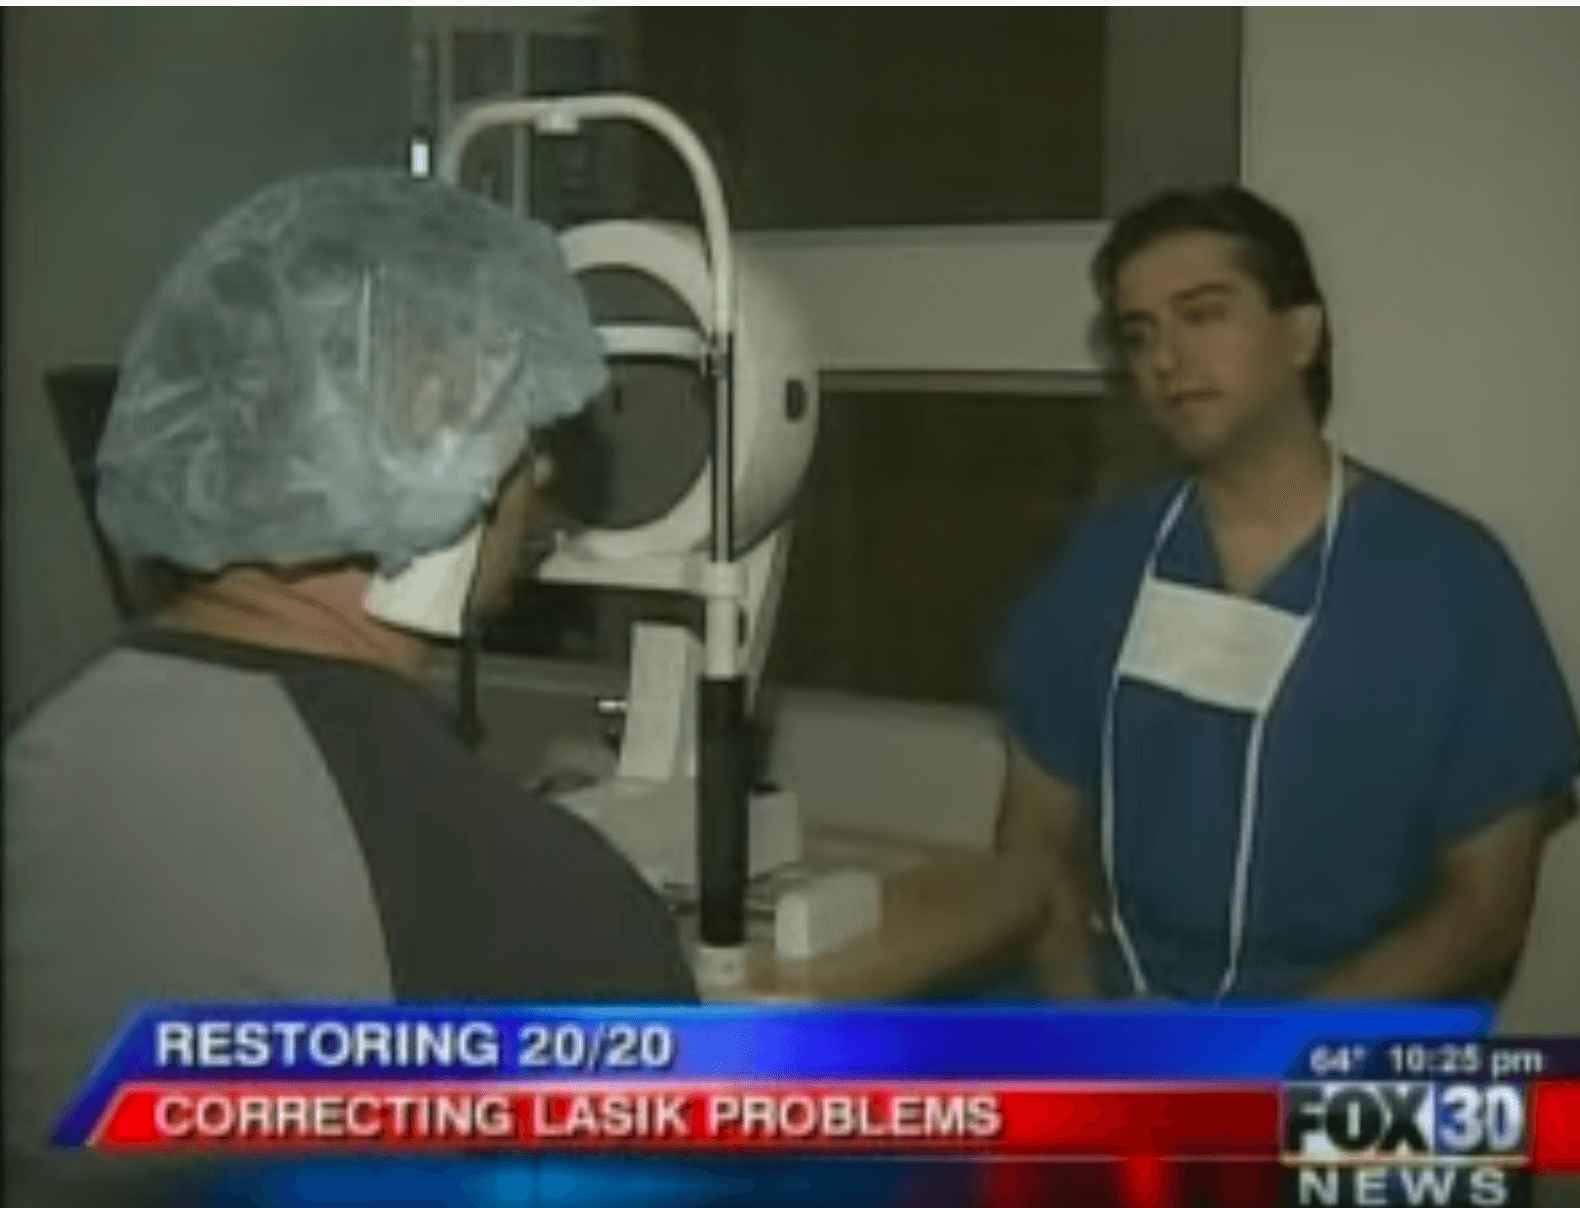 Lasik Complication Fox News interview